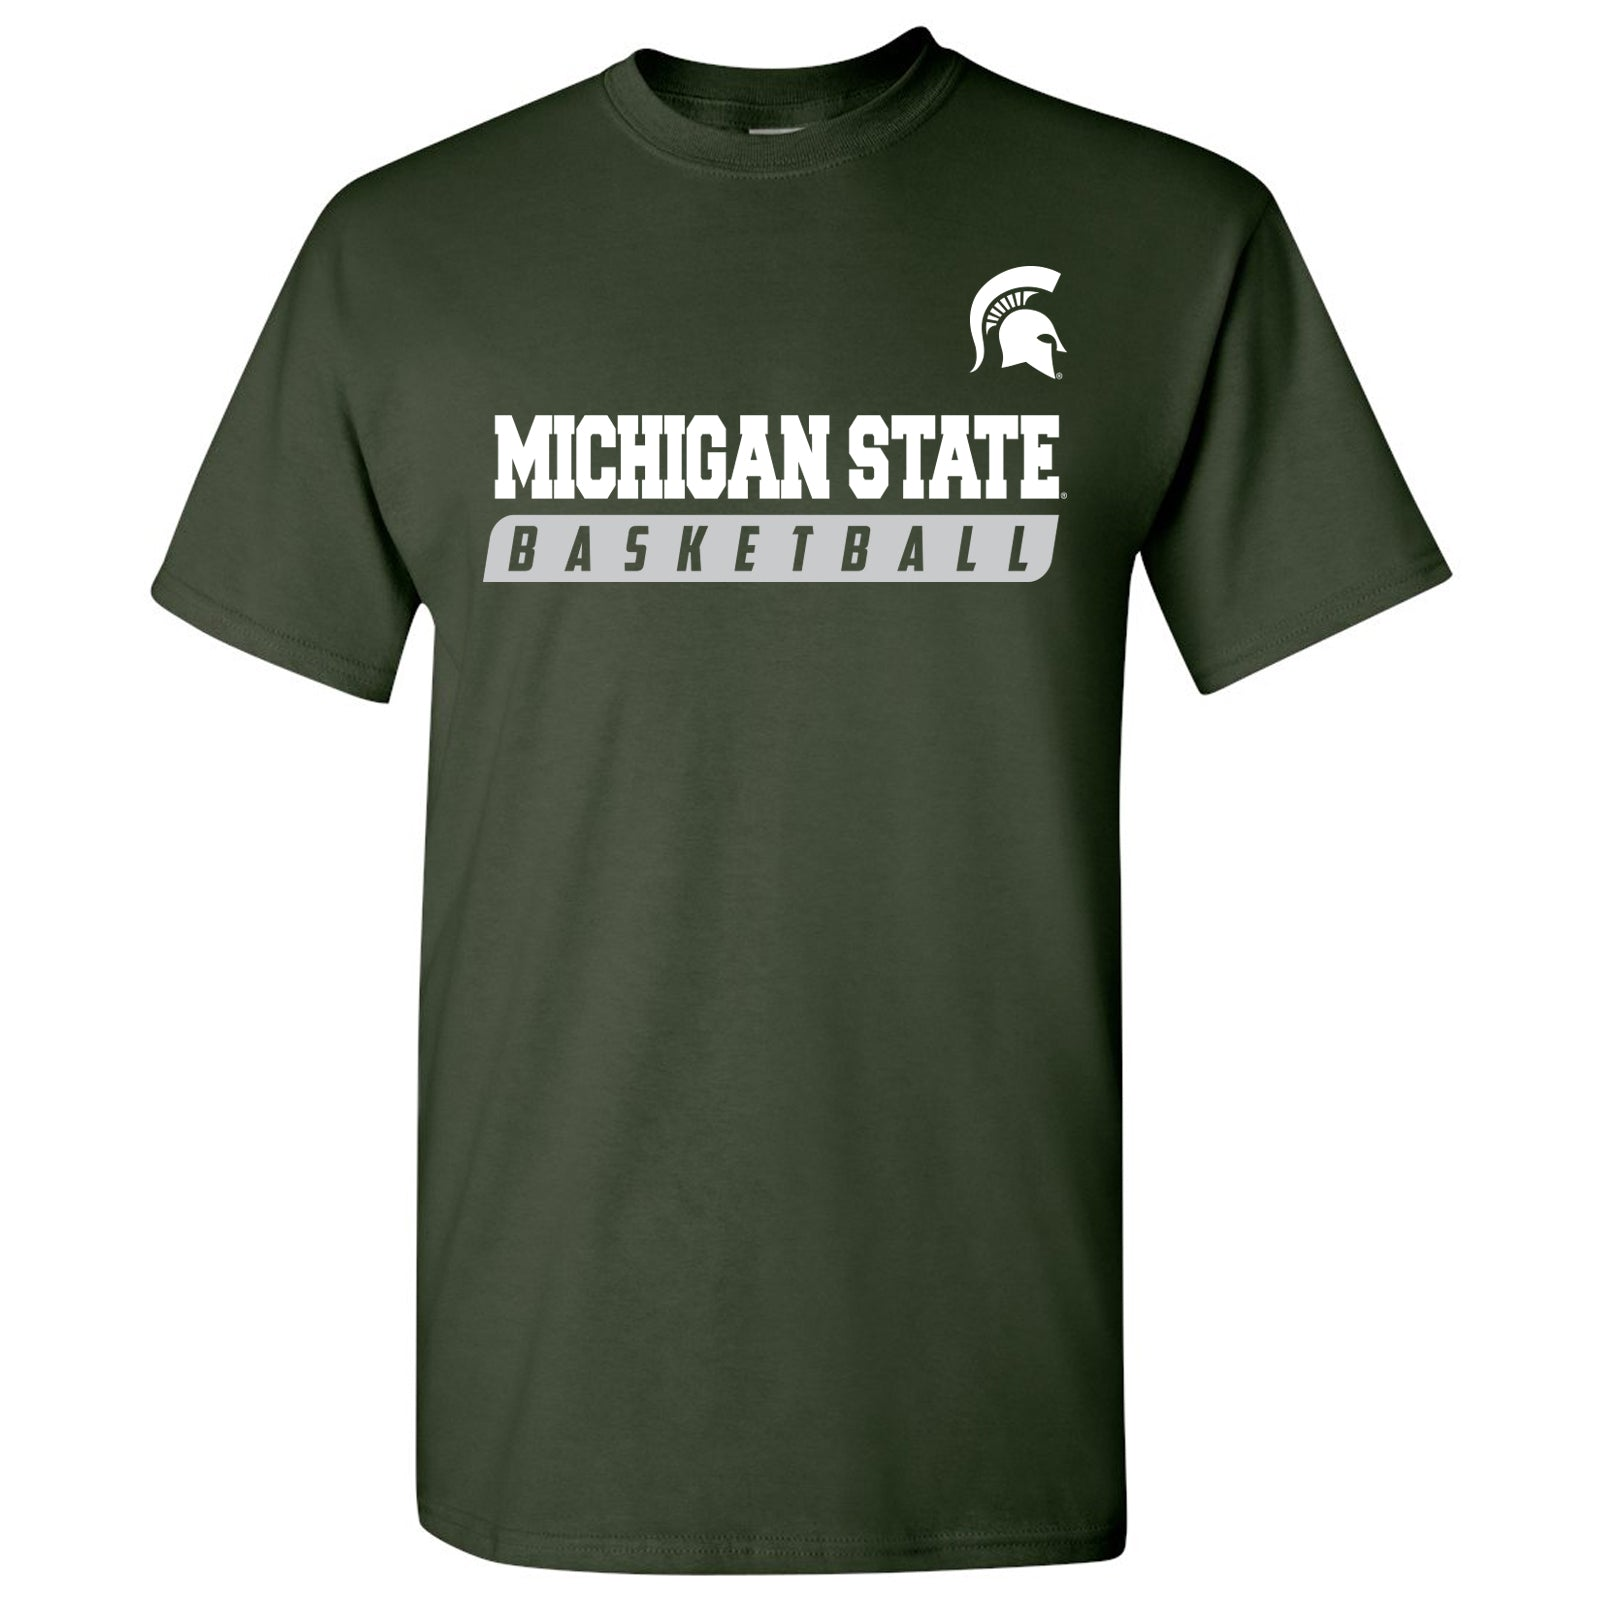 big sale 86a97 9bcf4 Michigan State University Spartans Basketball Slant Short Sleeve T-Shirt -  Forest